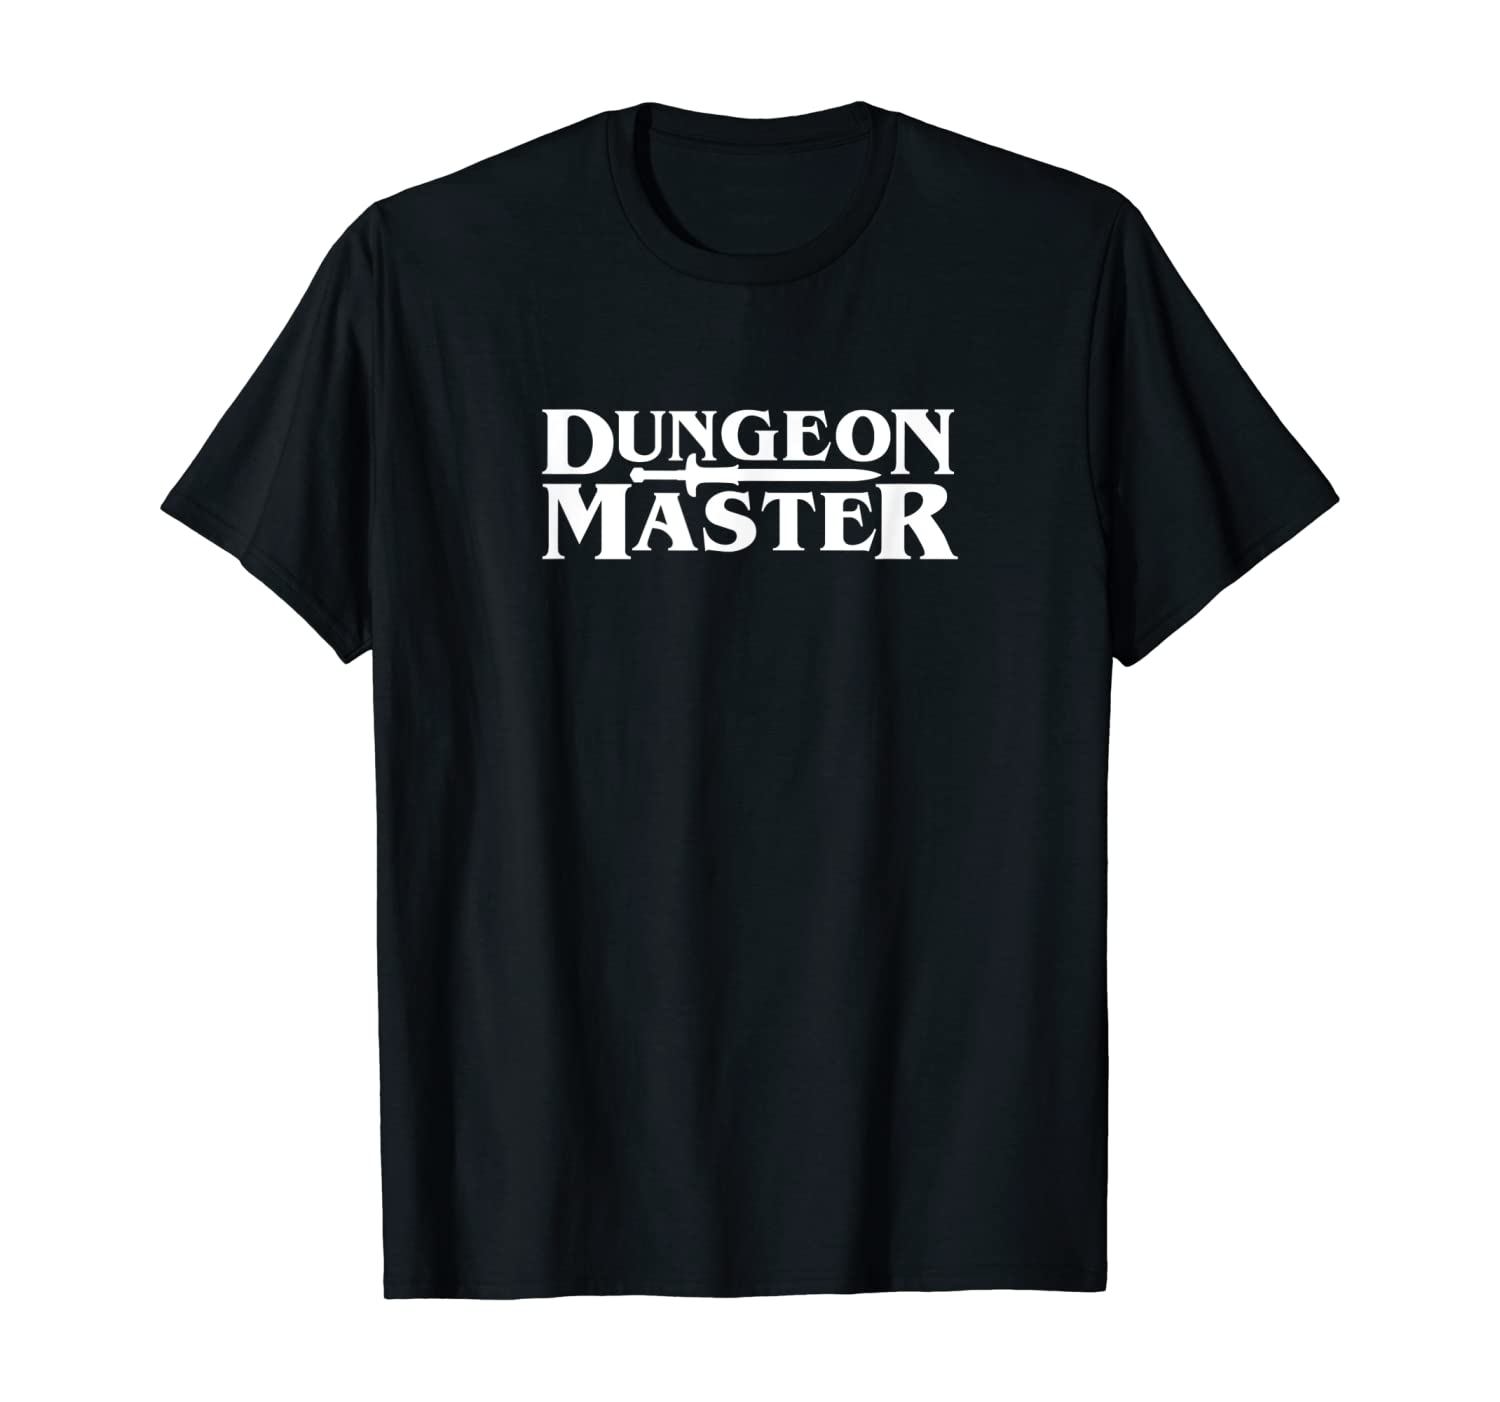 DUNGEON TShirt for DMs Campaigns With Medieval Sword